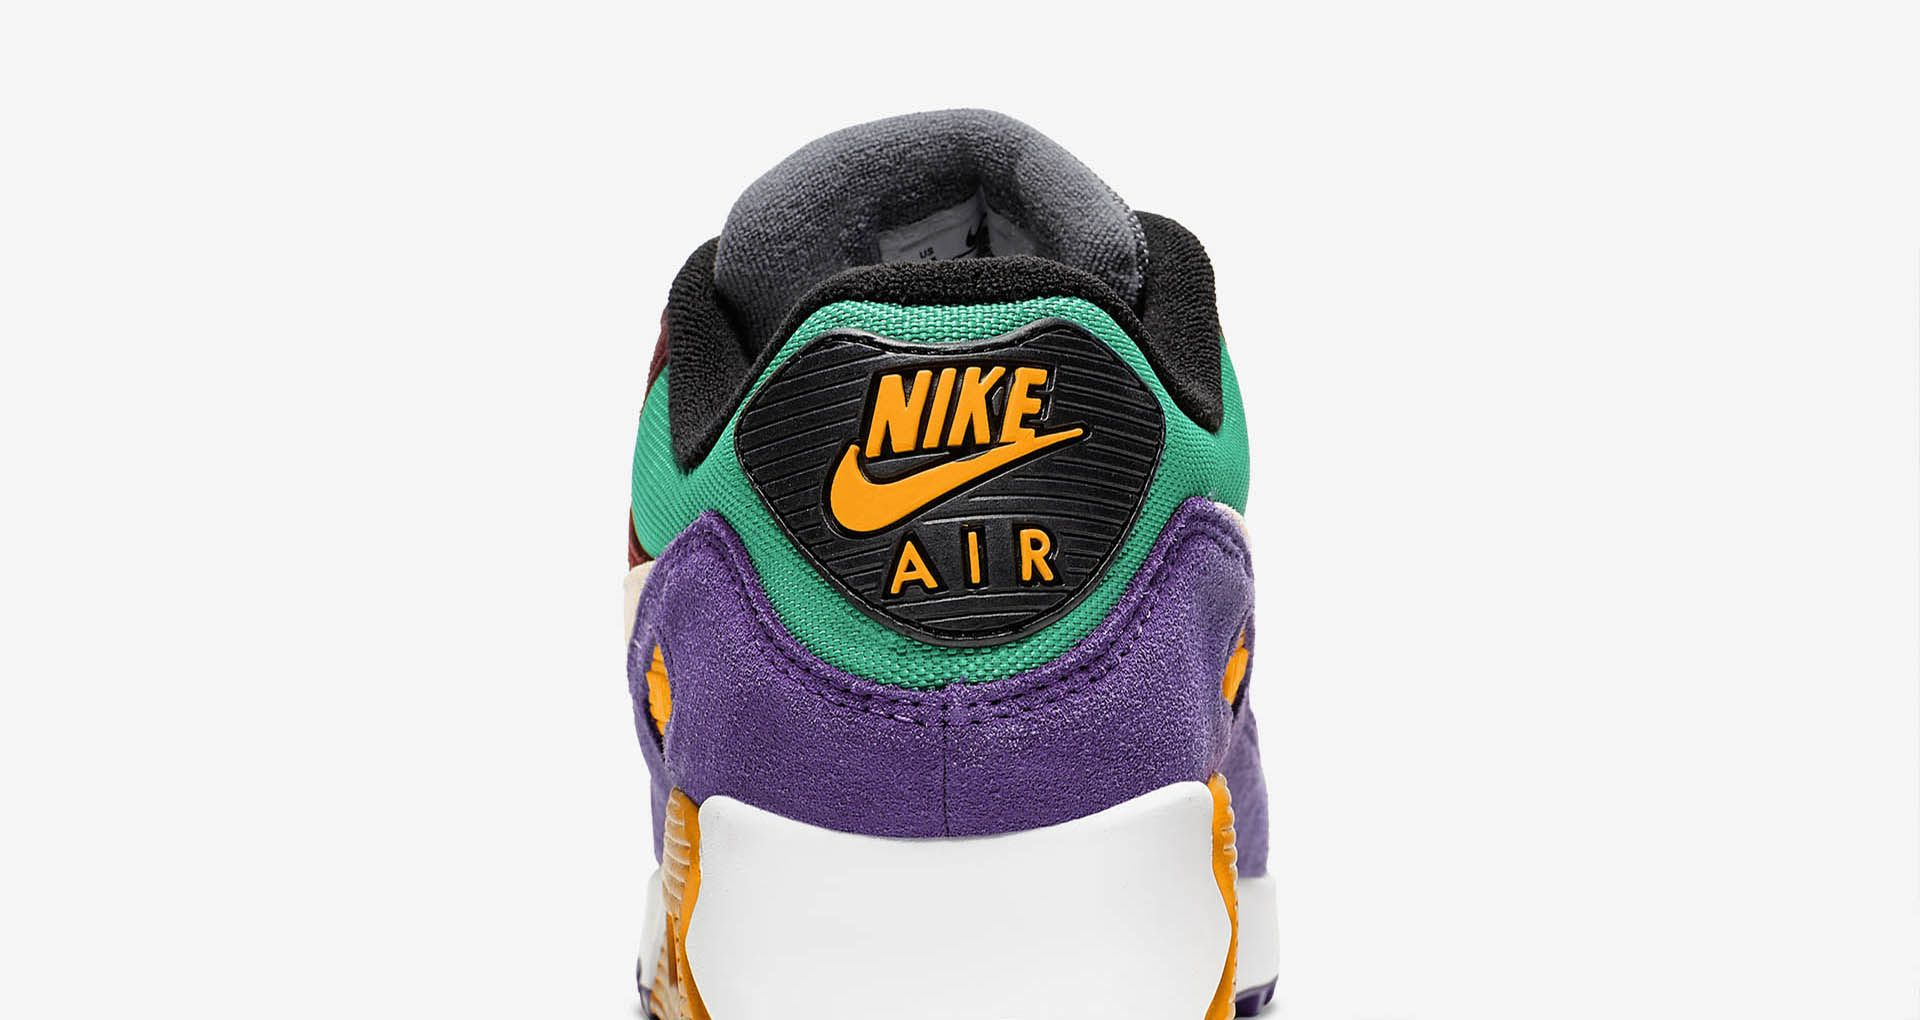 09-nike-air-max-90-viotech-cd0917-600